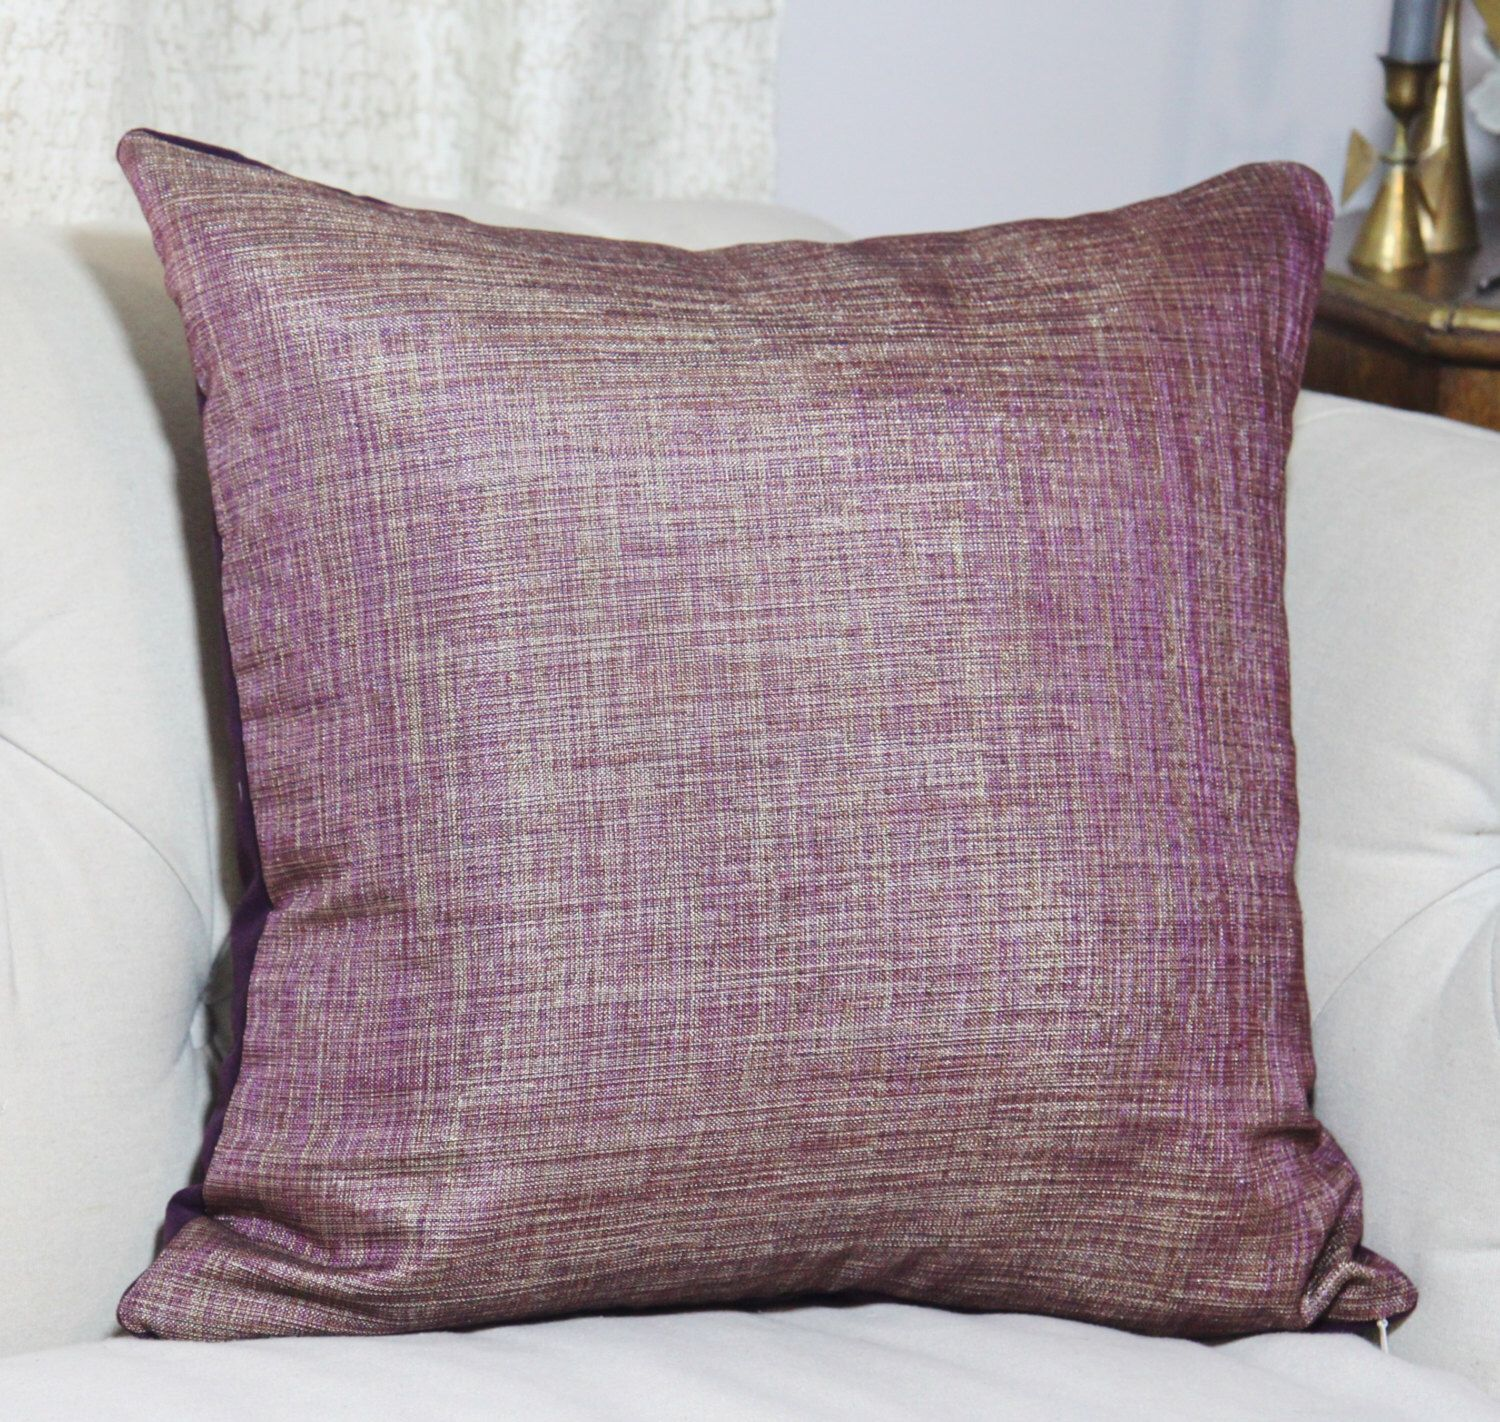 southwest fresh of pillows if rustic like decor tone jewel love photos the adorable style and pillow you will